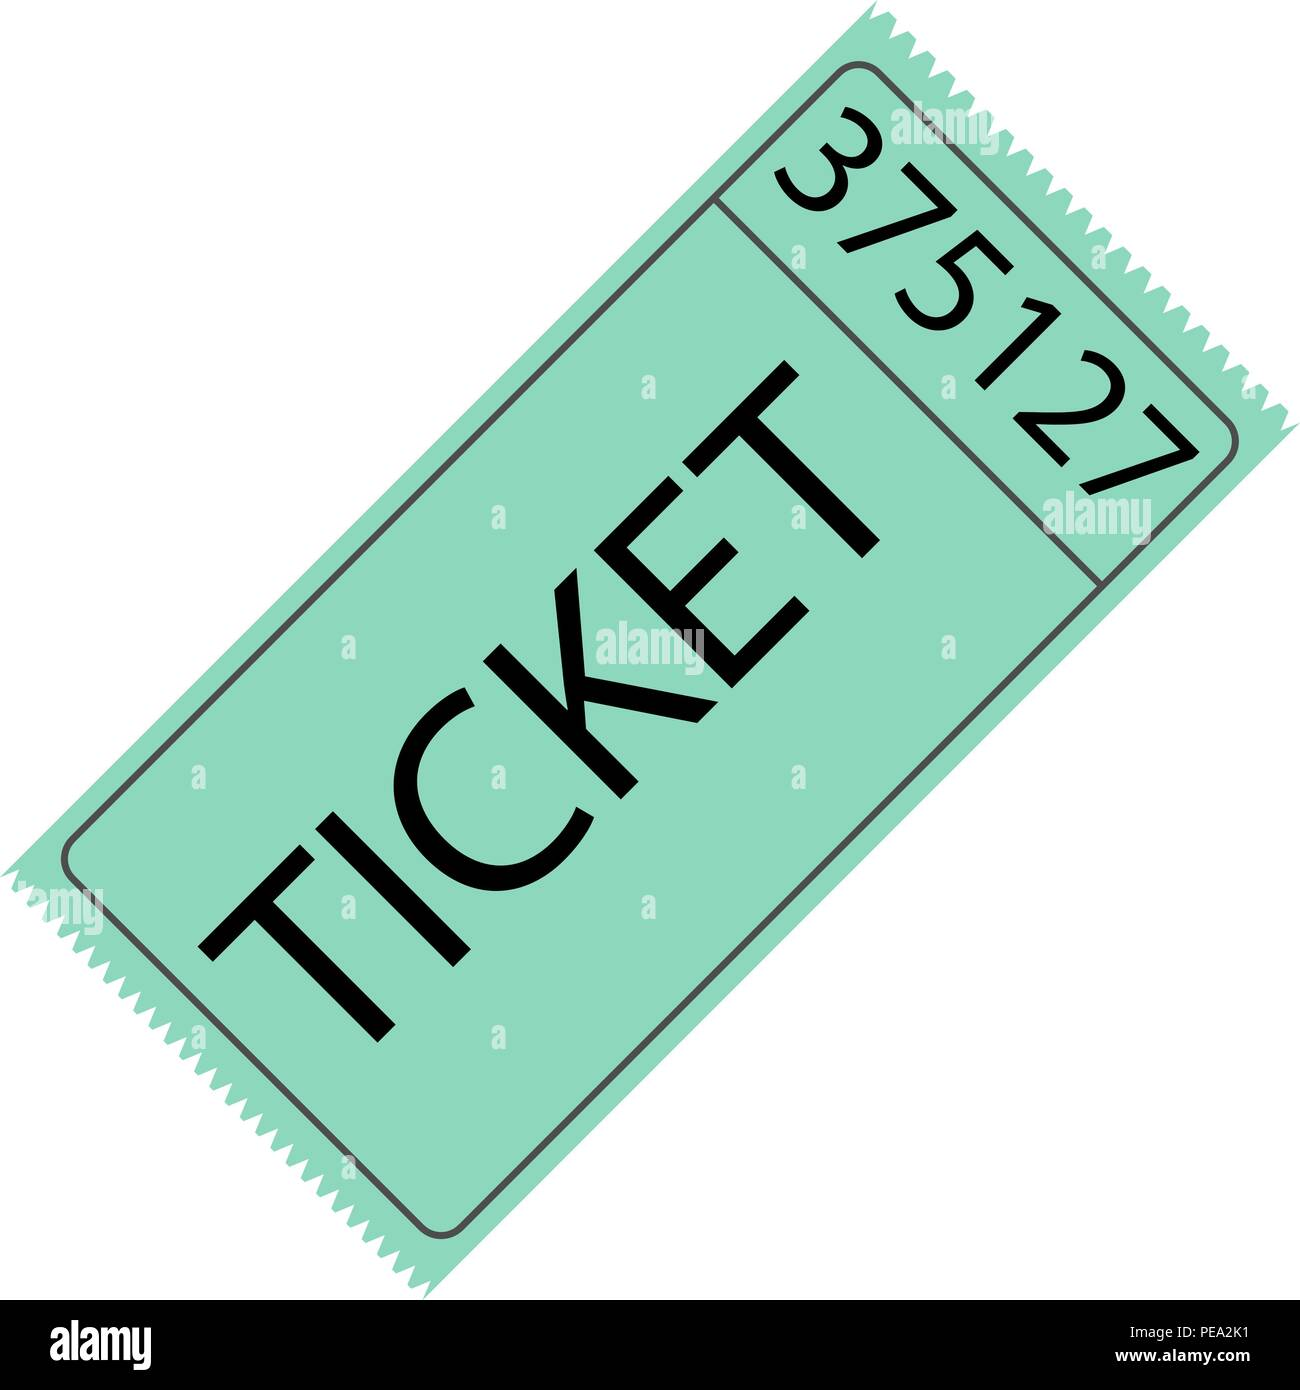 Tear-off ticket with number - Stock Image